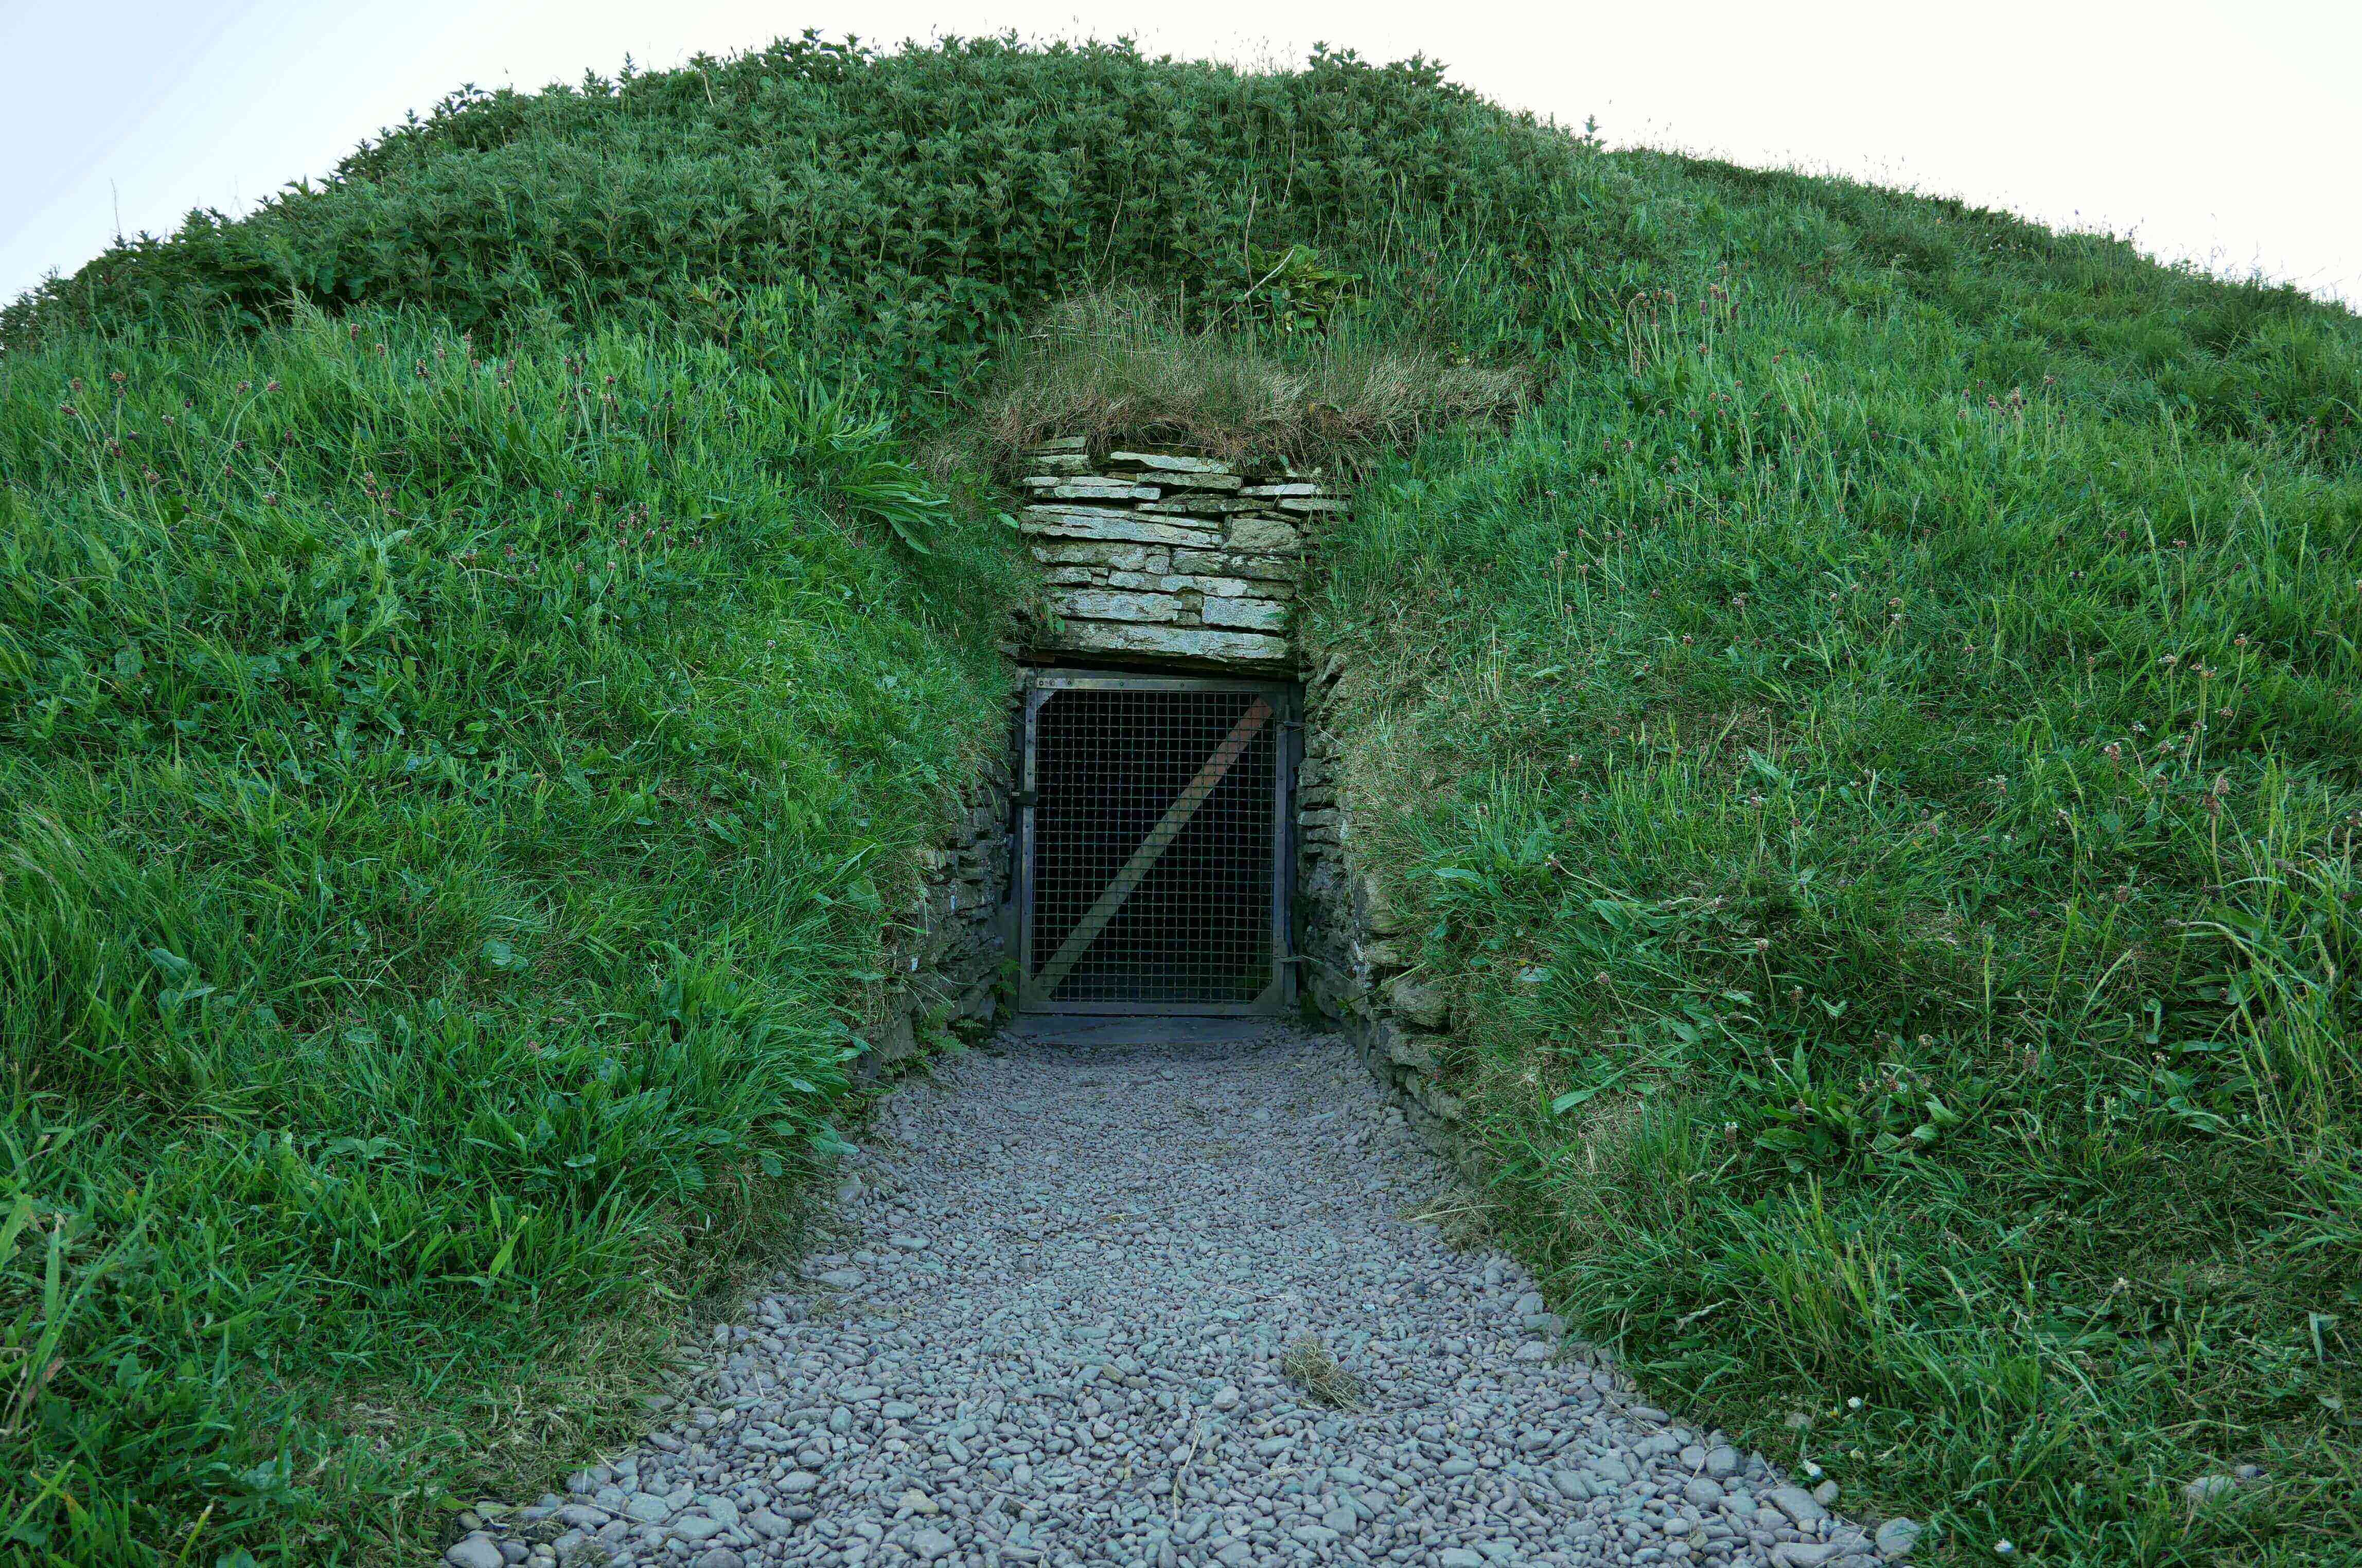 The mound at Finstown, Orkney, Scotland